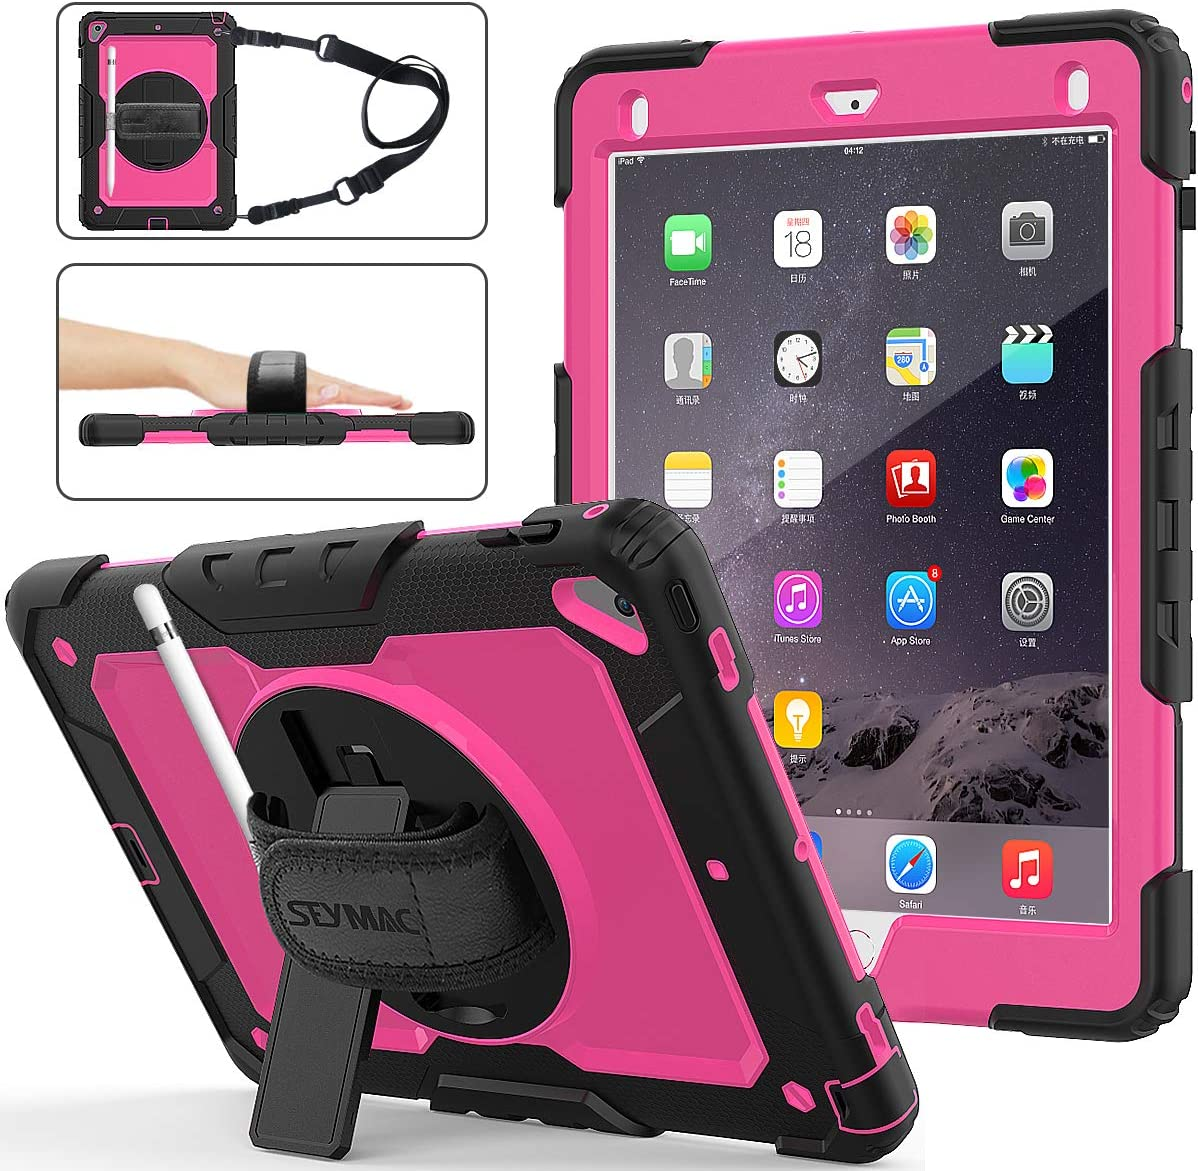 iPad 6th/5th Generation Case, SEYMAC Stock [Full-Body] Drop Proof Armor Case with 360 Rotating Stand [Pencil Holder][Screen Protector] Hand Strap for iPad 6th/5th/ Air 2/ Pro 9.7 (Rose+Black)